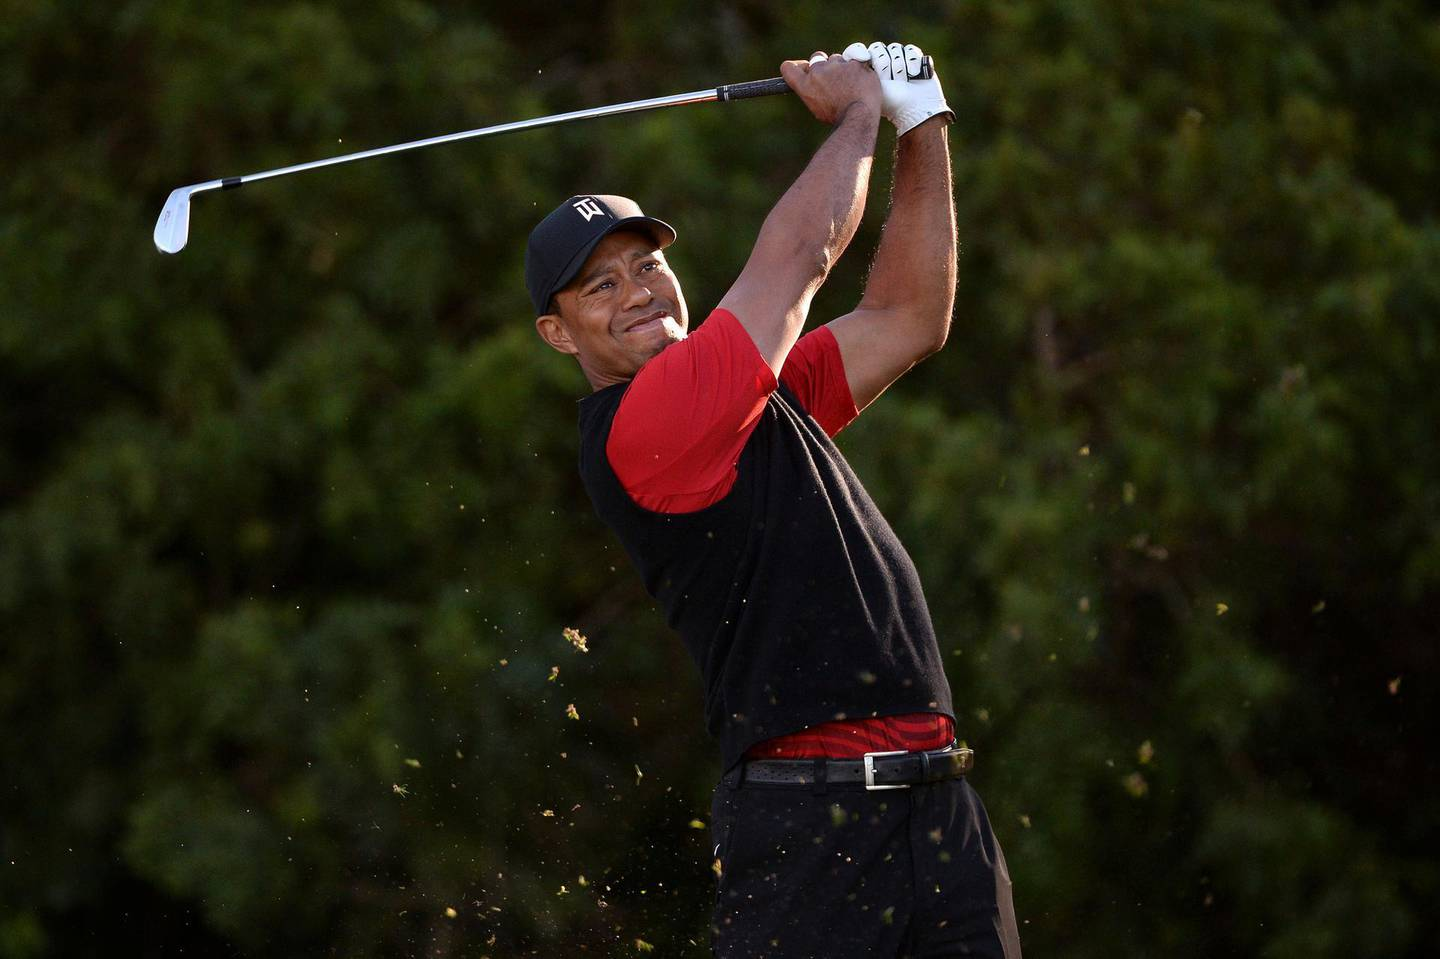 FILE PHOTO:    Jan 28, 2018; San Diego, CA, USA; Tiger Woods plays his shot from the 11th tee during the final round of the Farmers Insurance Open golf tournament at Torrey Pines Municipal Golf Course - South Co. Mandatory Credit: Orlando Ramirez-USA TODAY Sports/File Photo